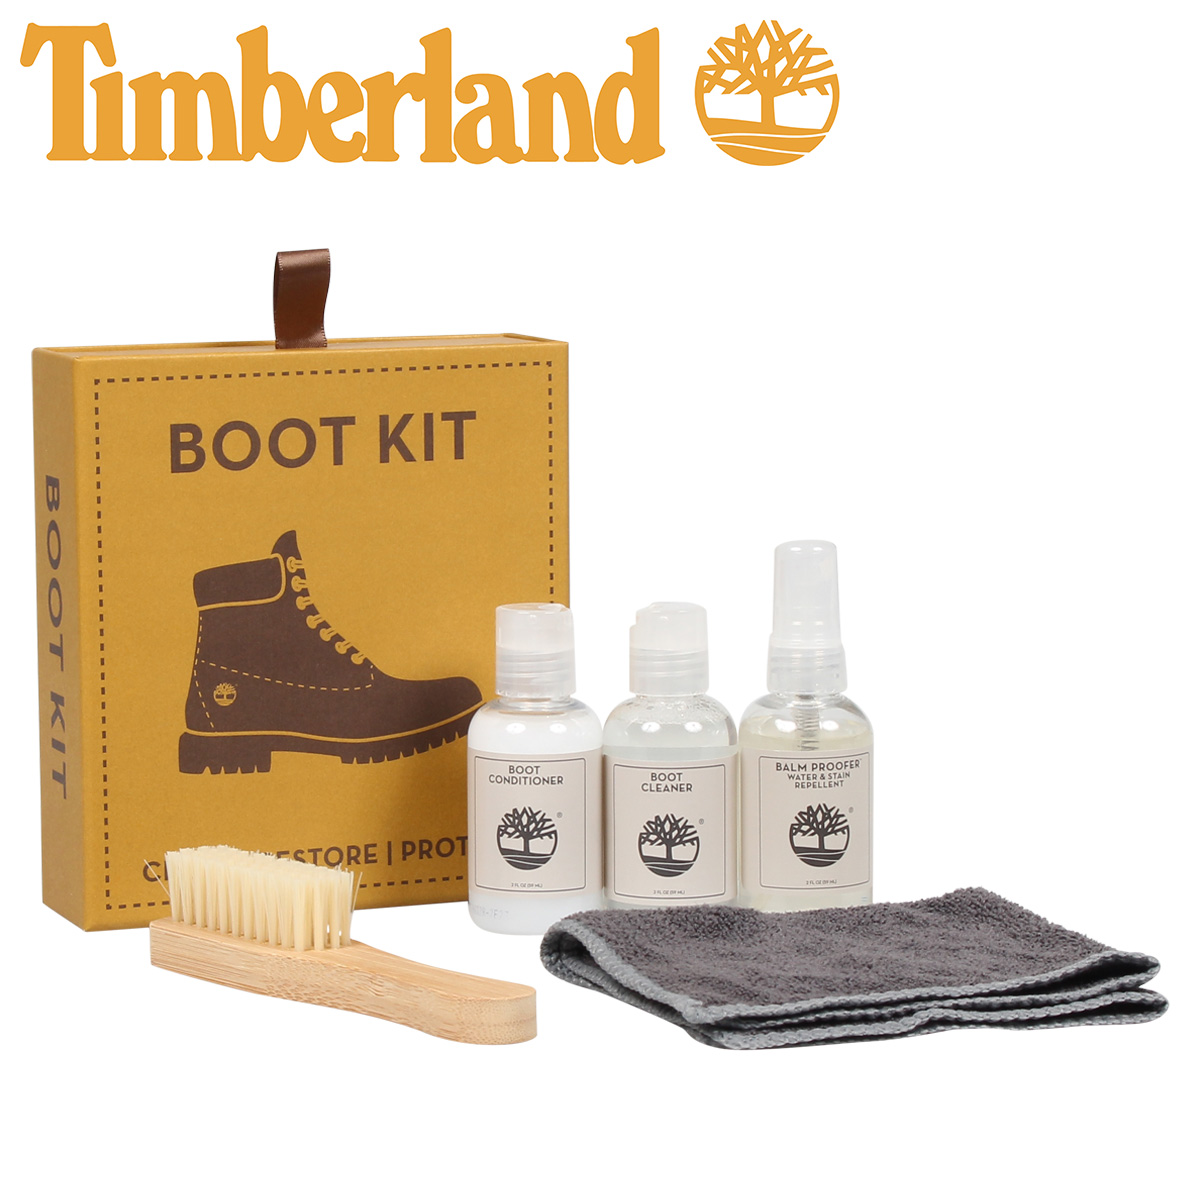 Timberland Timberland Shoo care set boots care shoes leather waterproof spray water repellency shoes brush cleaner shoes care care product care BOOT